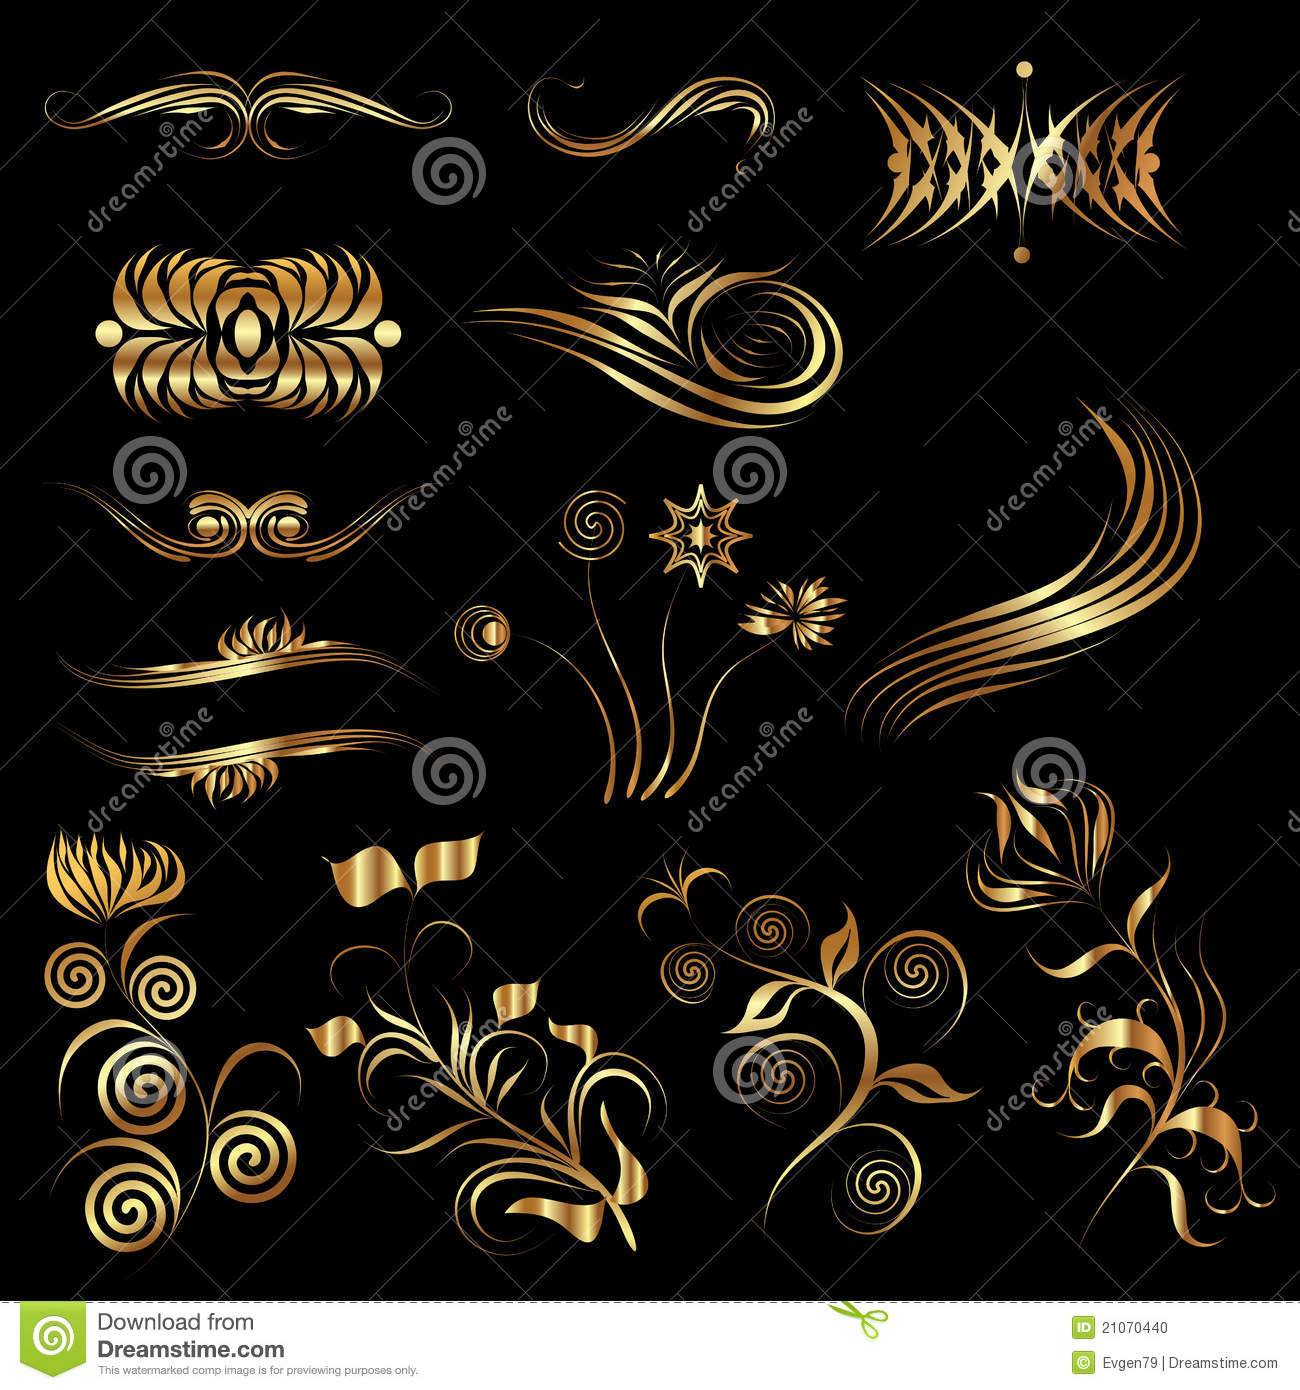 Vector design elements stock vector illustration of for Gothic design elements